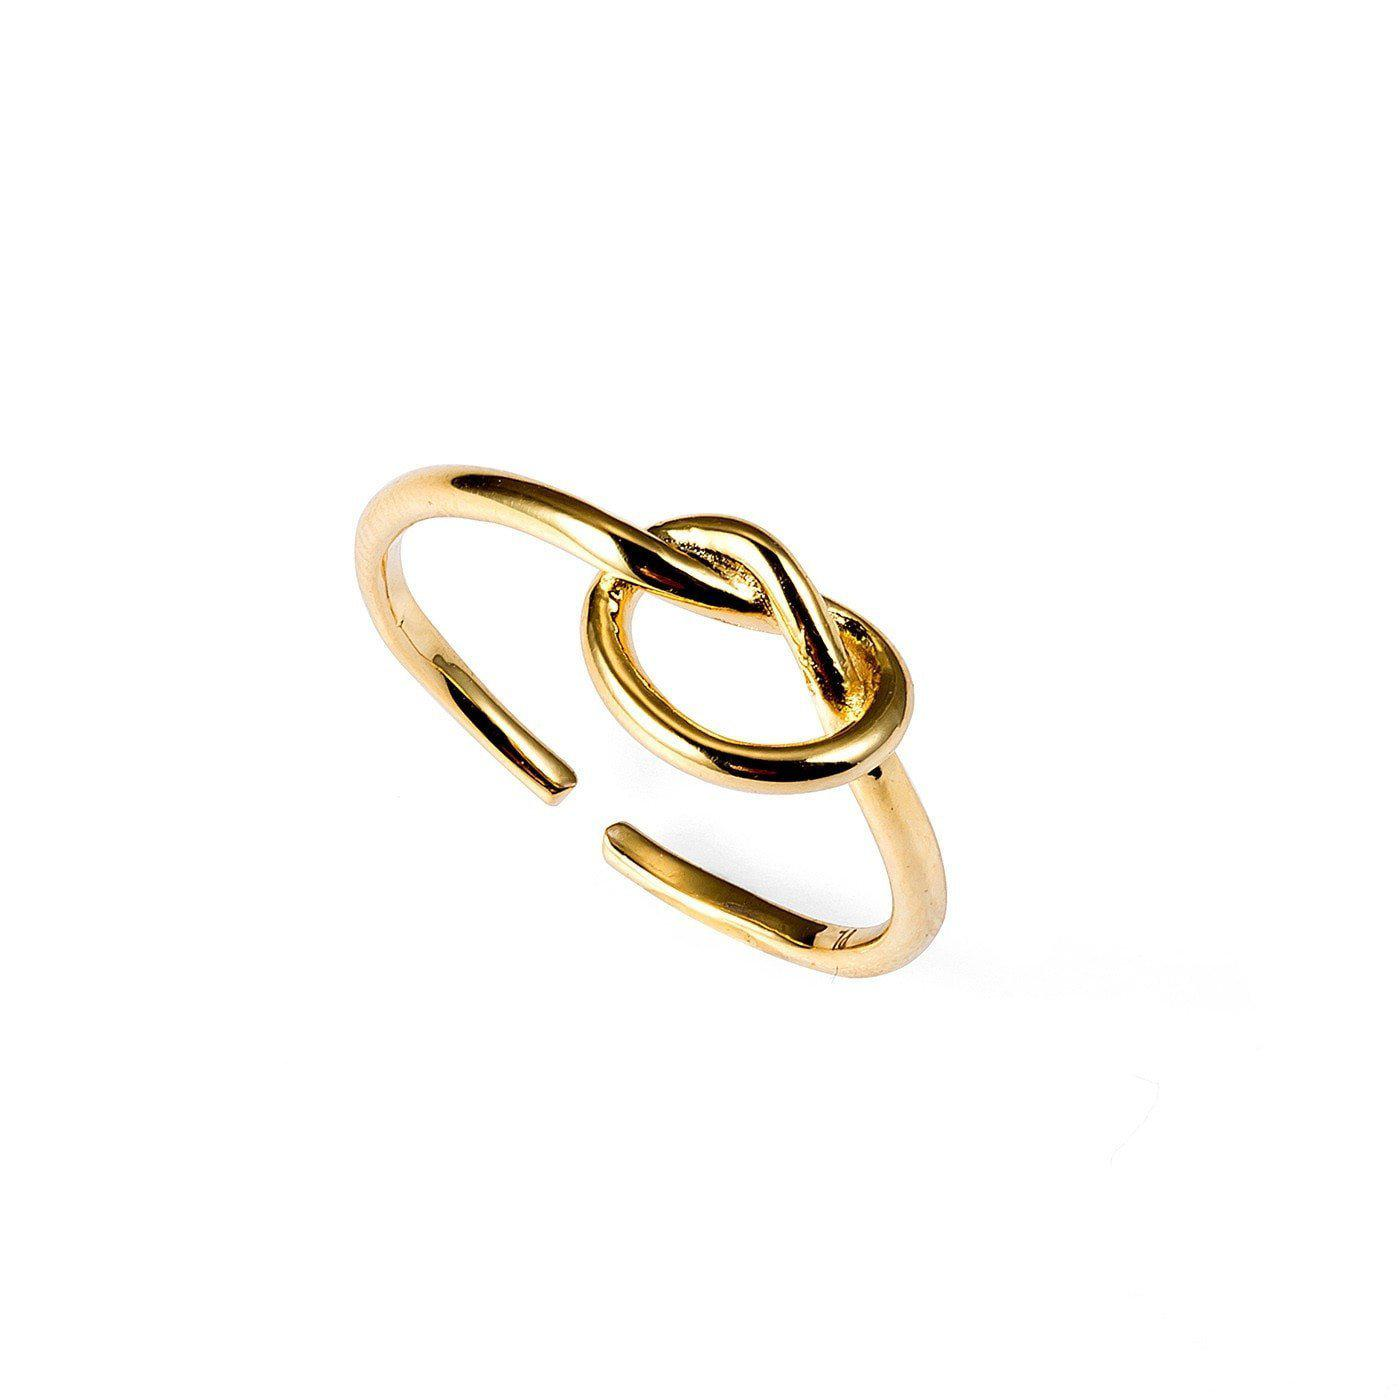 Dauntless Knot Toe Ring-Blinglane